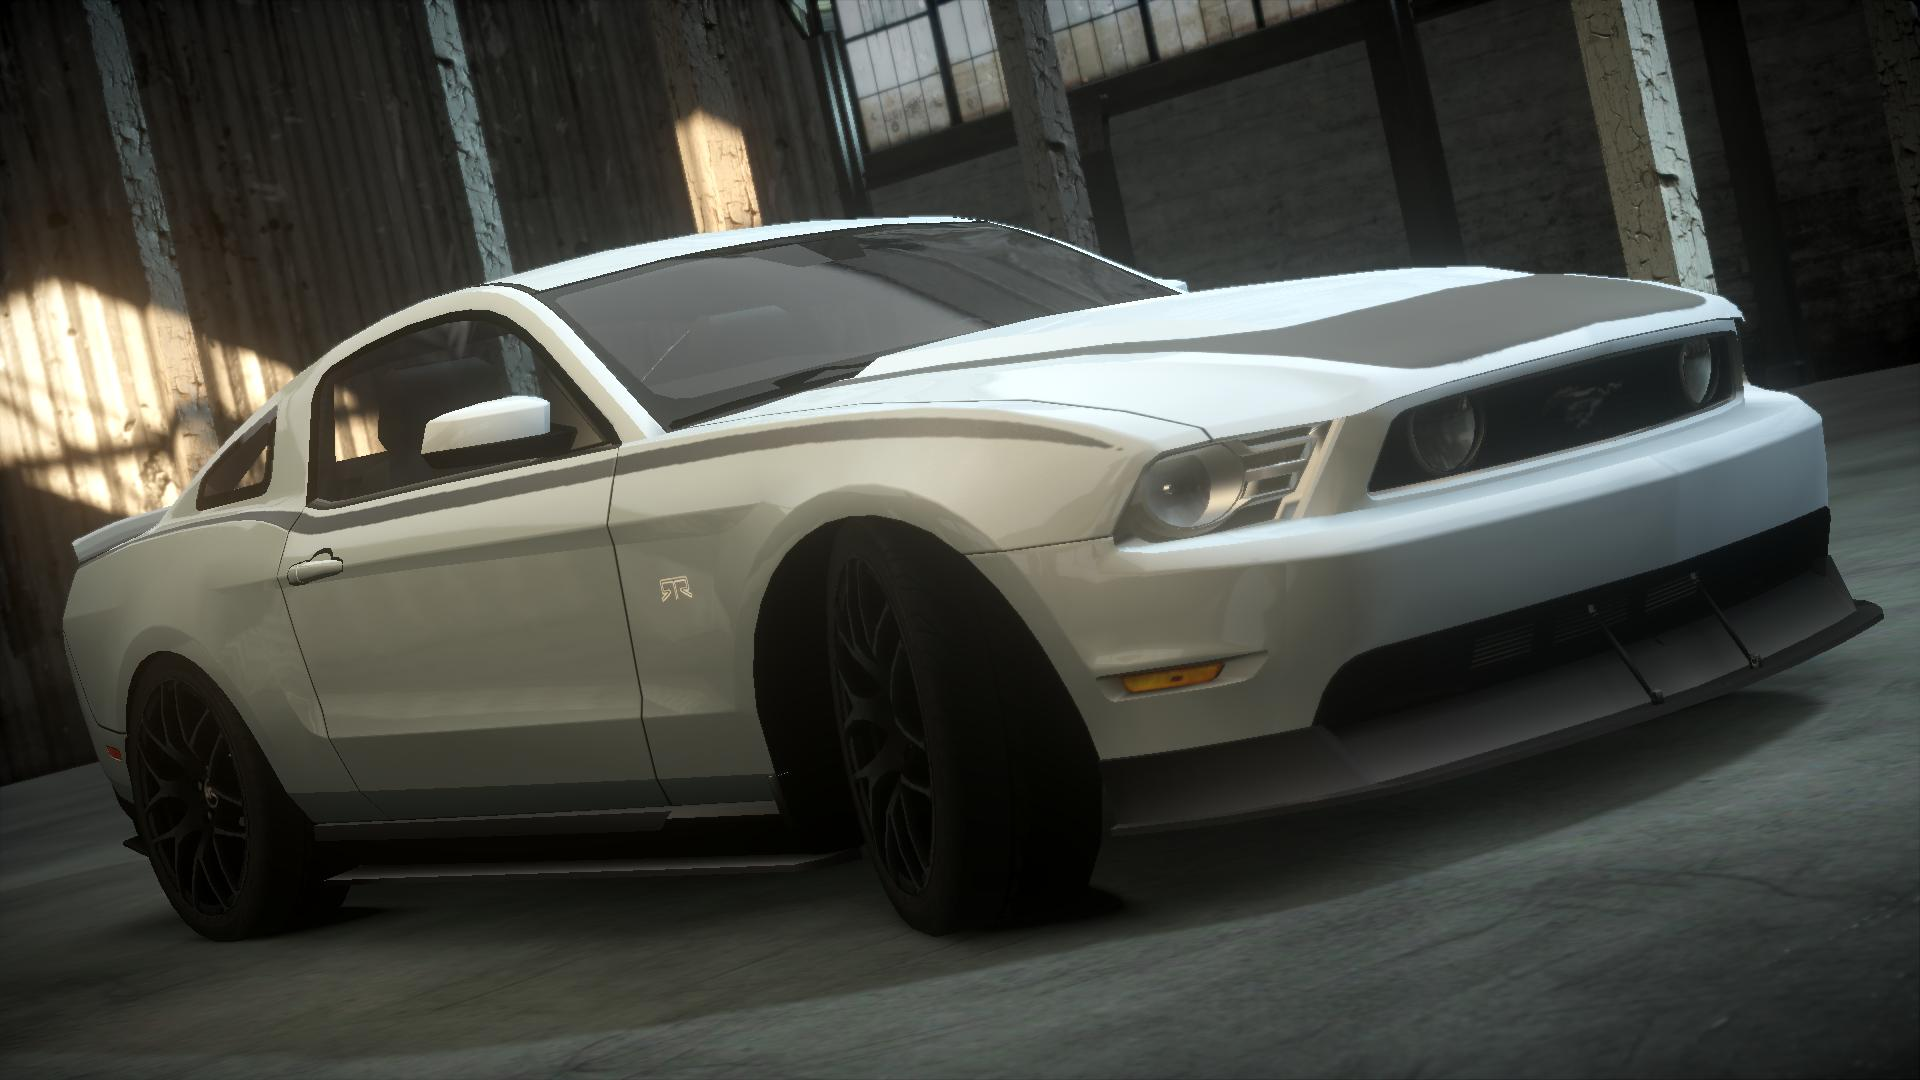 Ford Mustang RTR (Gen. 5)